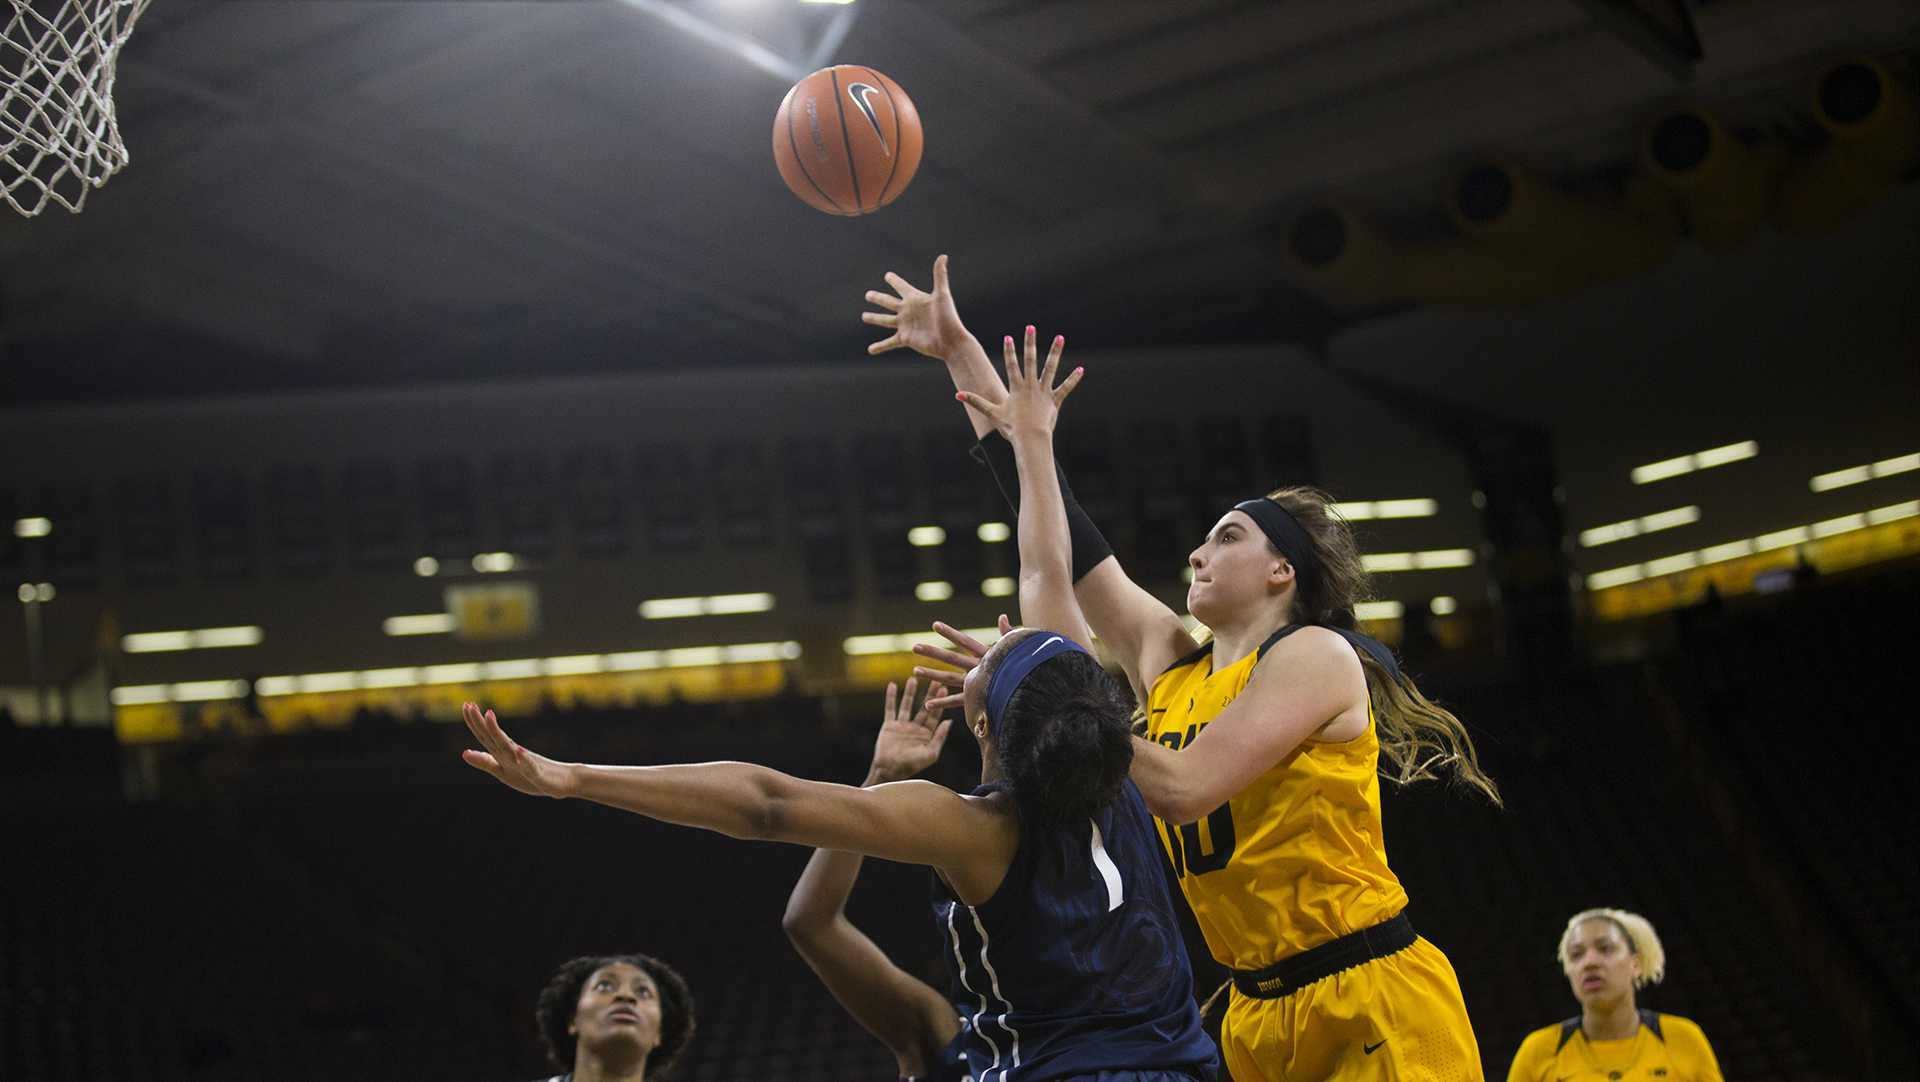 Iowa forward Megan Gustafson goes for an rebound during the Iowa/Penn State basketball game at Carver-Hawkeye Arena on Thursday, Feb. 8, 2018. The Hawkeyes defeated the Nittany Lions, 80-76.  (Lily Smith/The Daily Iowan)